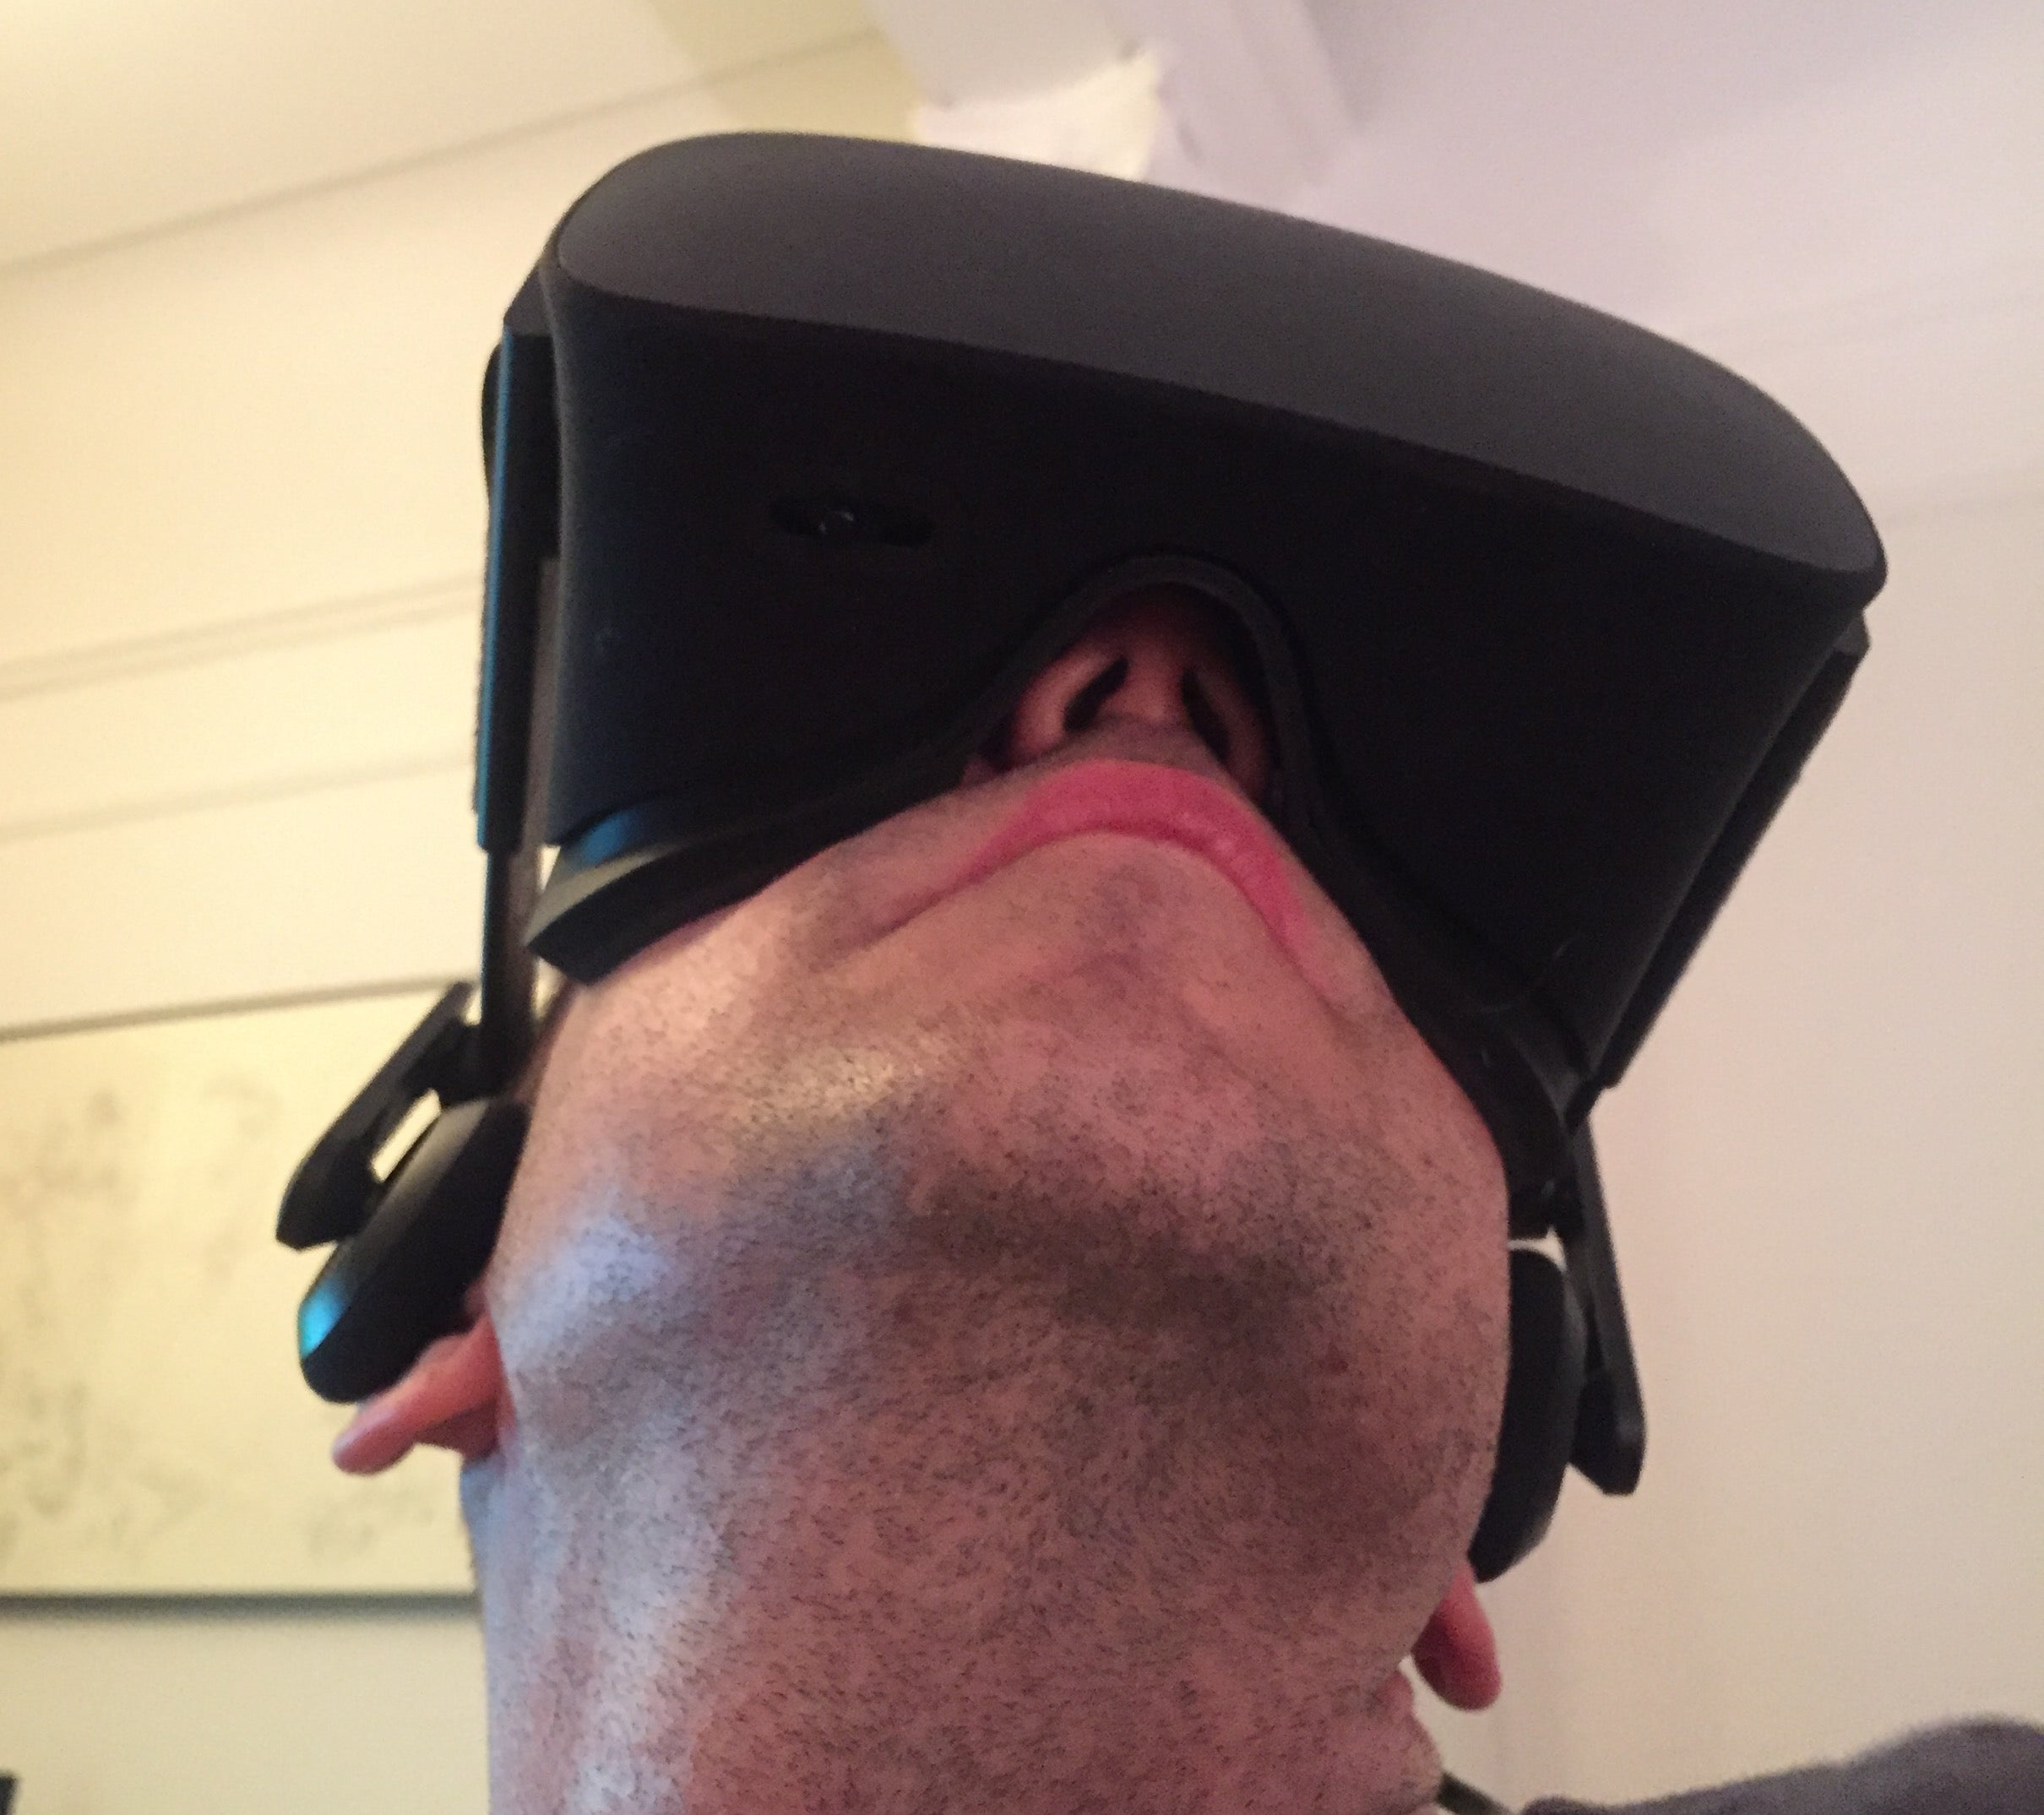 The Highs And Lows Of VR Gaming, Five Months In